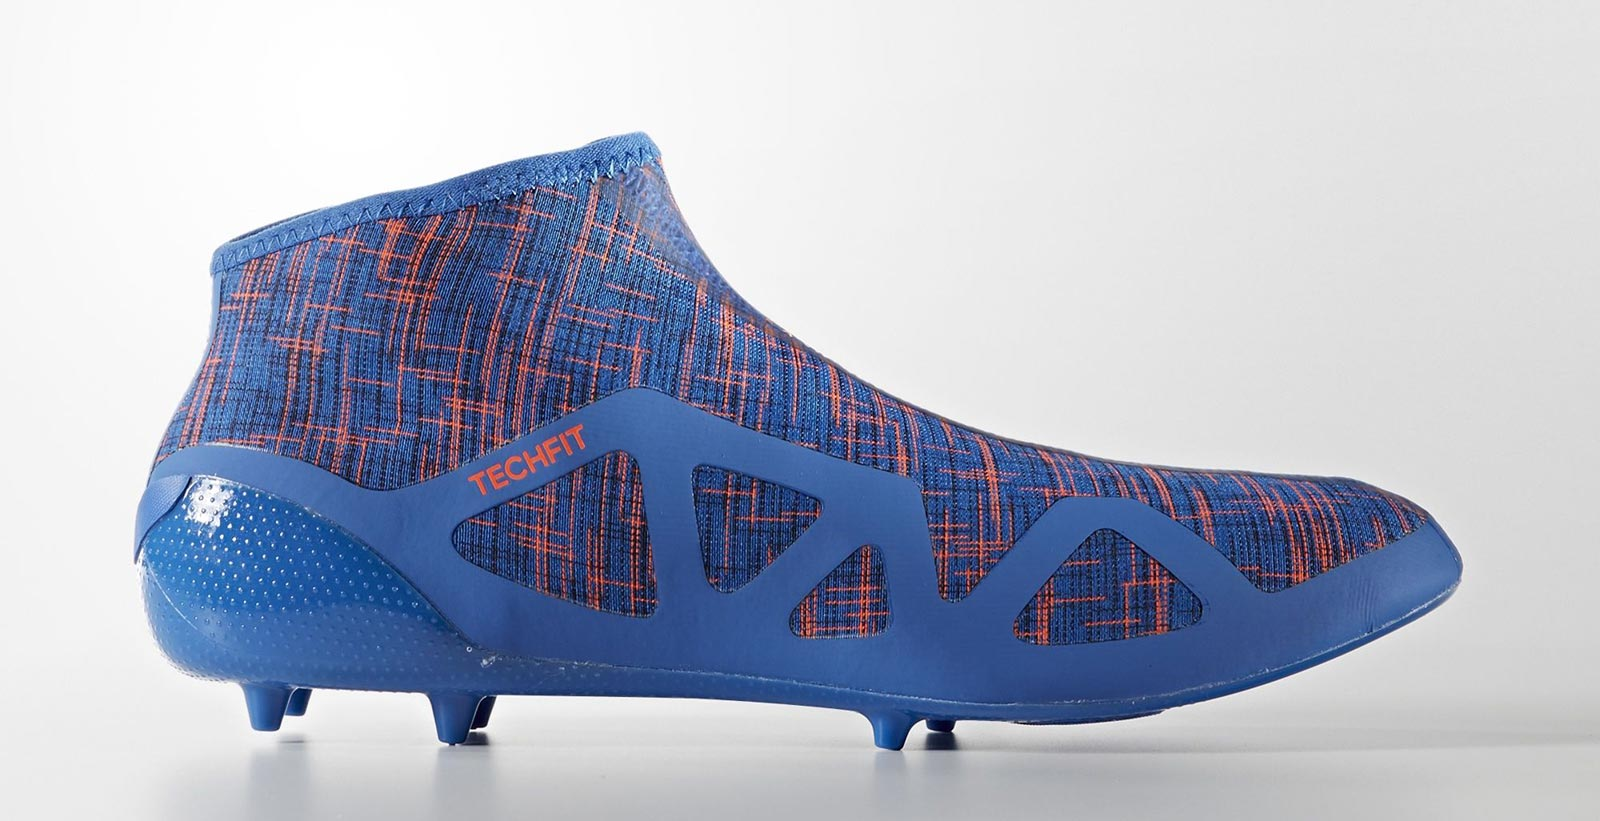 Image result for adidas glitch fg cleat